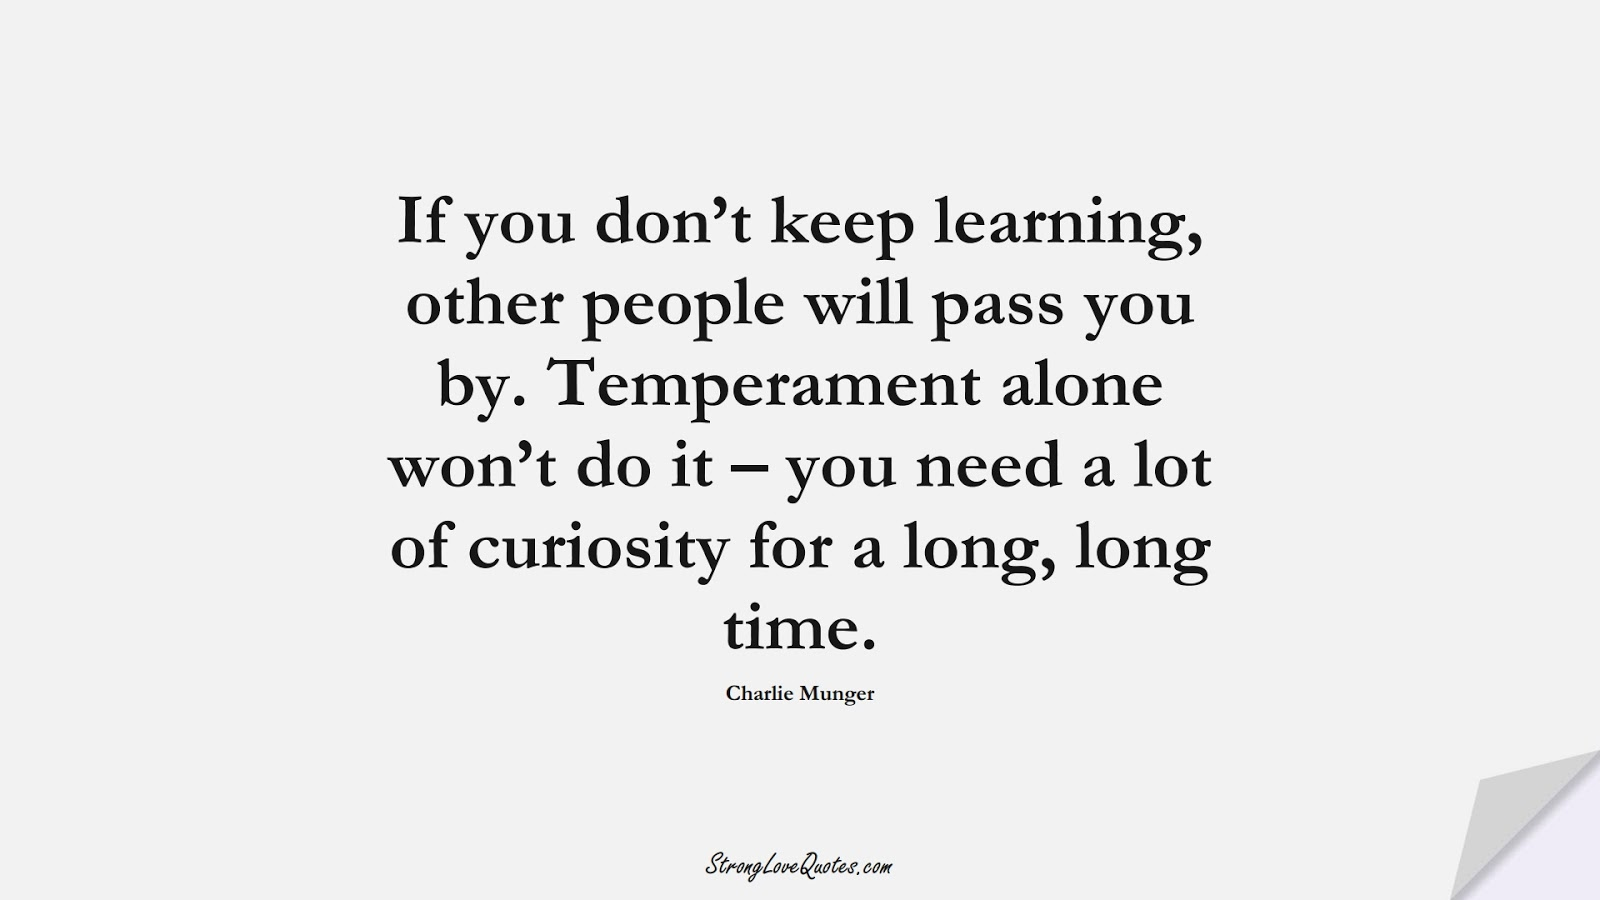 If you don't keep learning, other people will pass you by. Temperament alone won't do it – you need a lot of curiosity for a long, long time. (Charlie Munger);  #KnowledgeQuotes